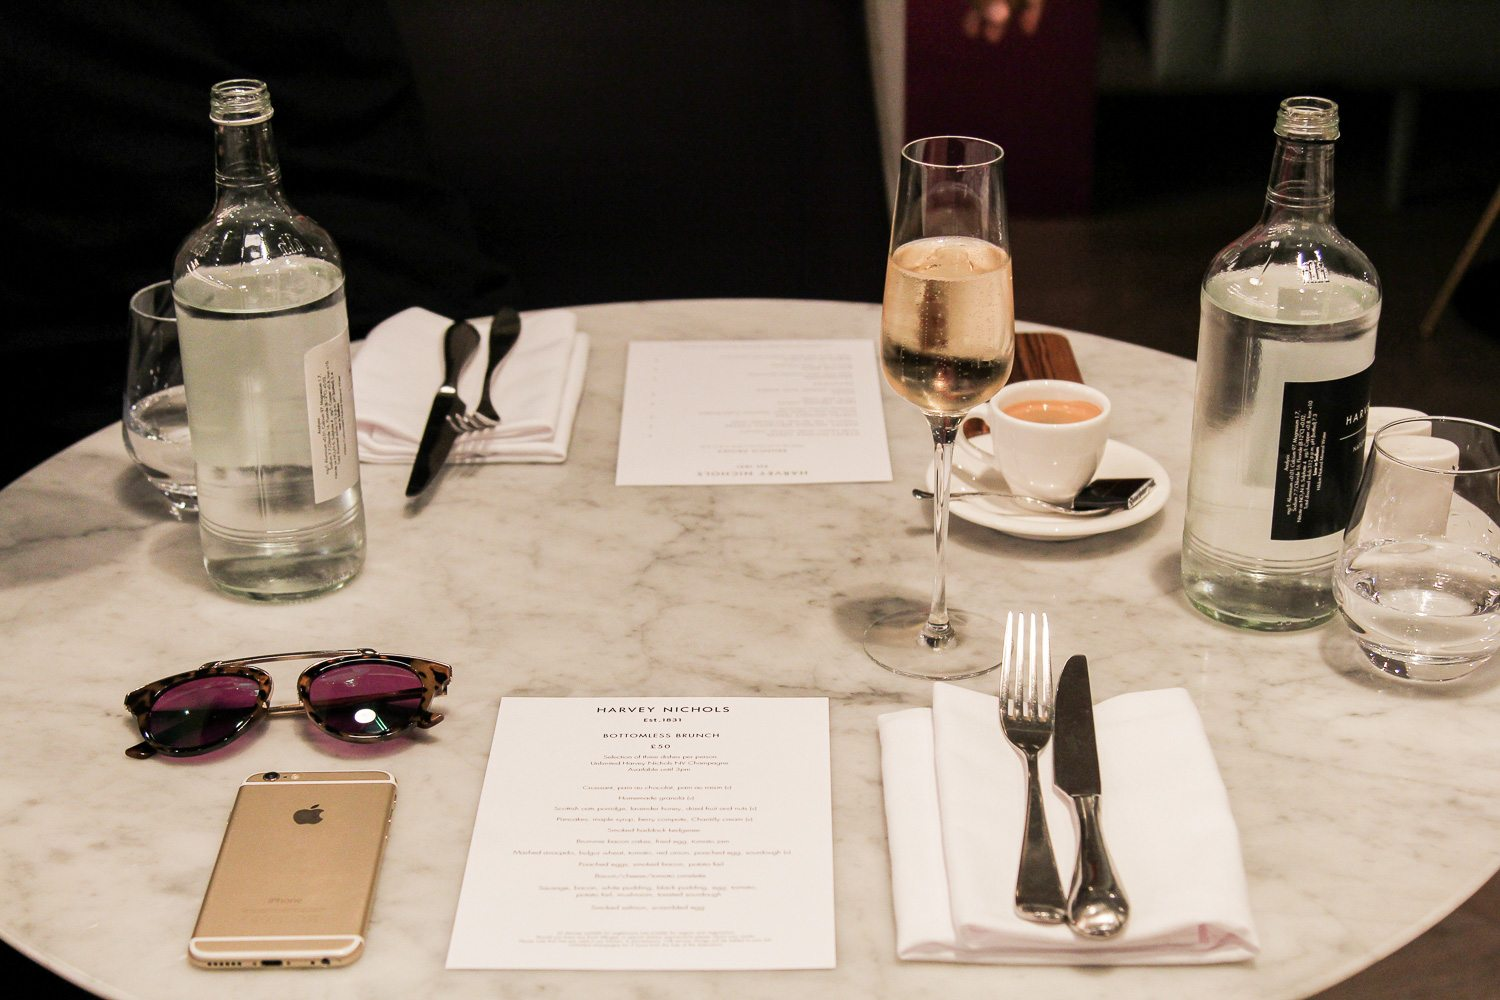 Harvey Nichols Brunch